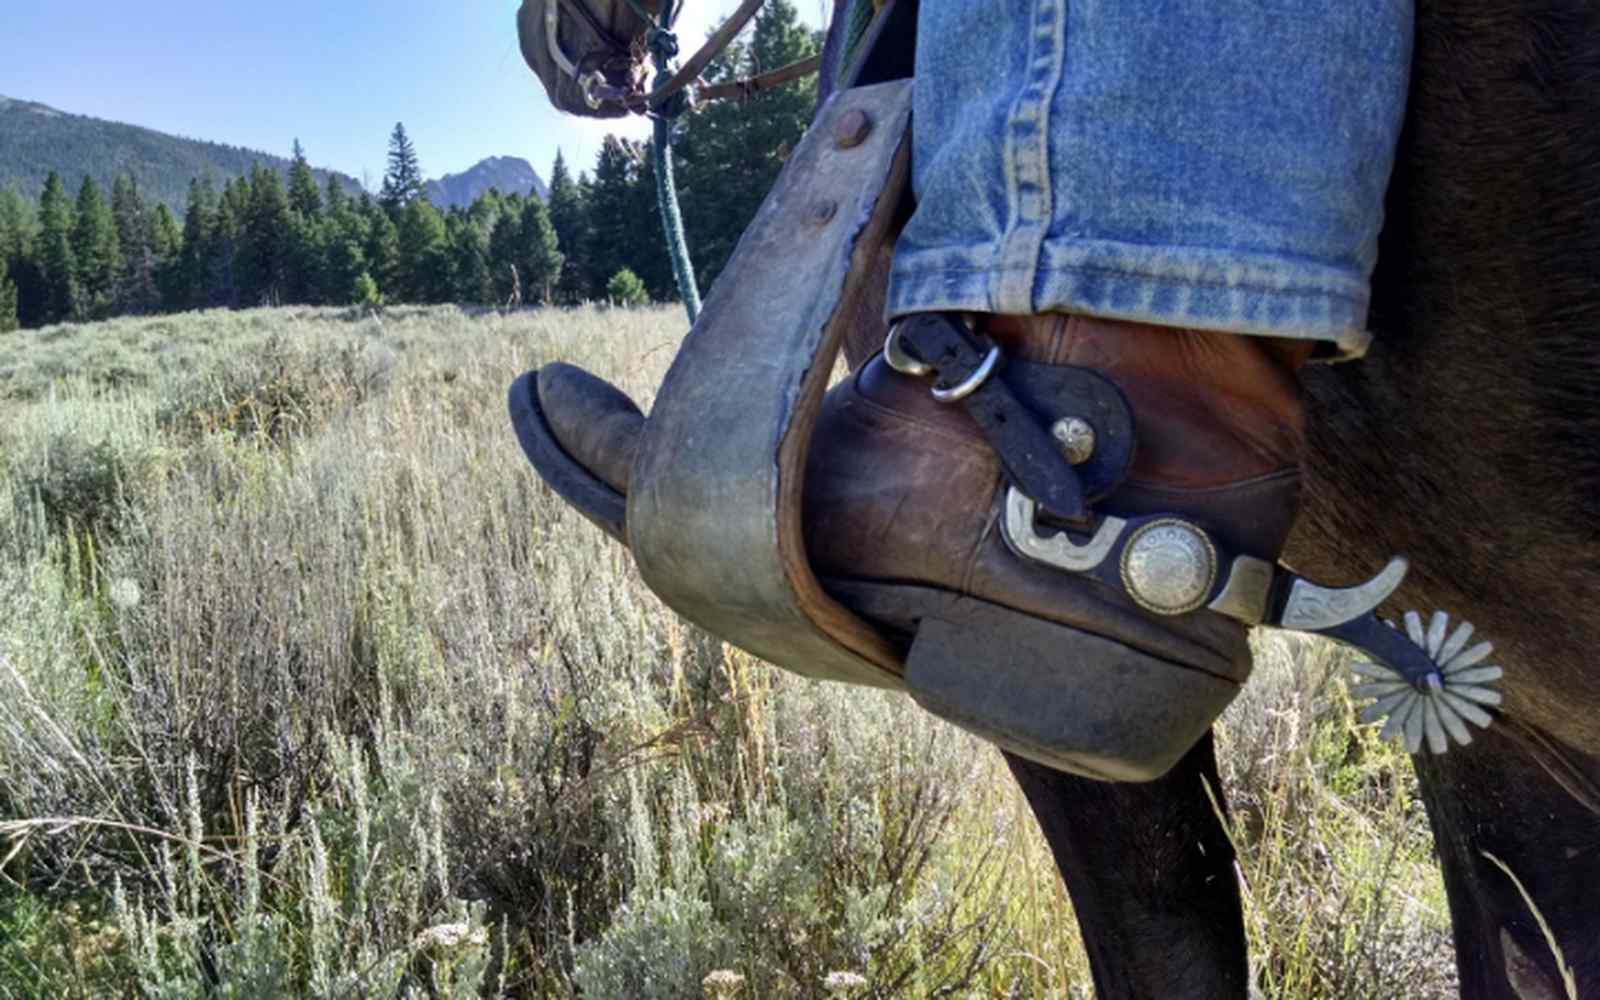 Cowboy boot with spurs